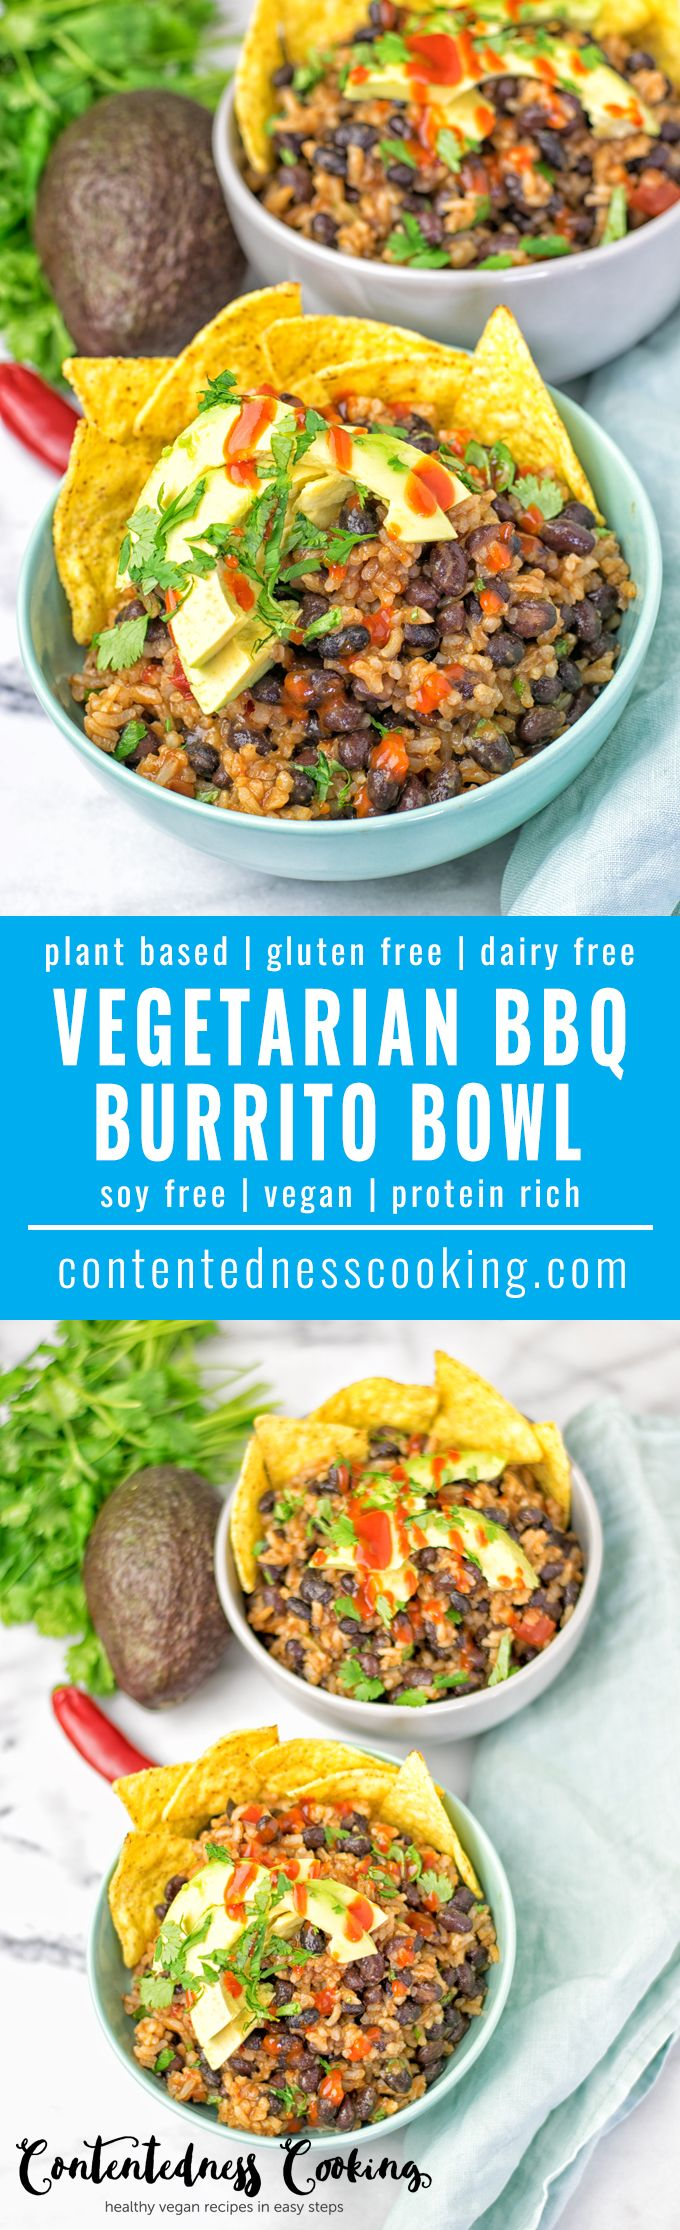 This insanely delicious Vegetarian BBQ Burrito Bowl is super easy to make. Full of black beans and spicy garlic, vegan, gluten free and is everything you ask for in a stunning lunch, dinner, or snack. #vegan #glutenfree #vegetarian #bbq #bowl #burrito